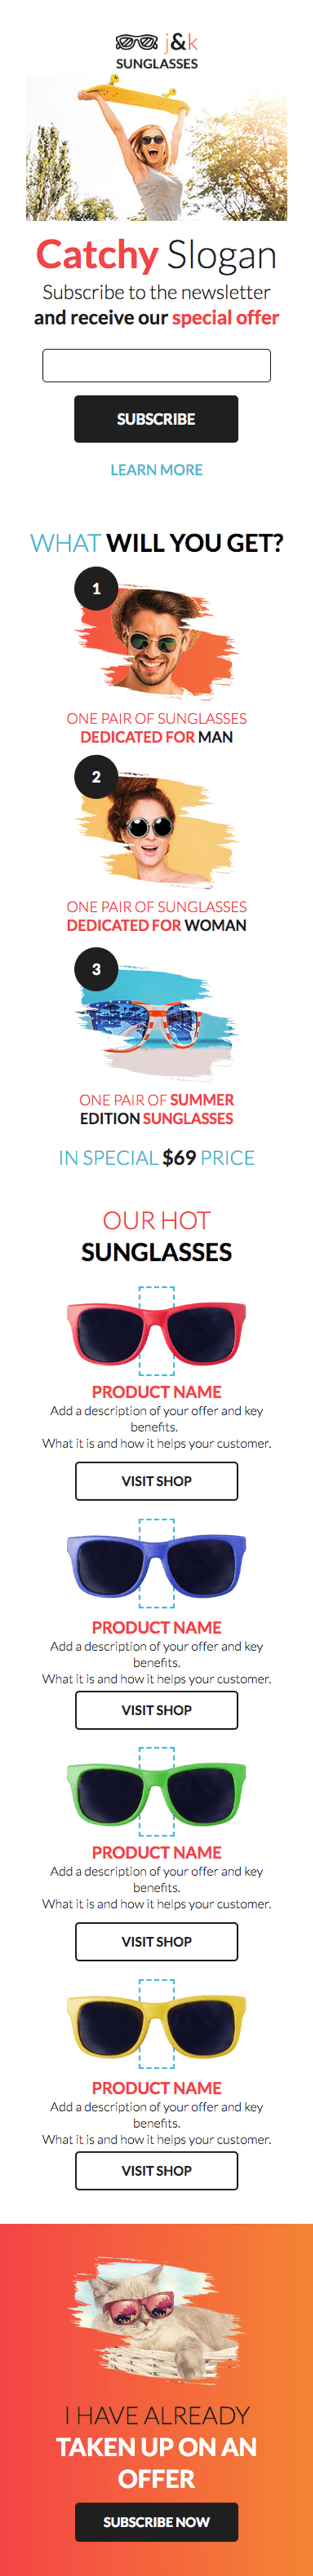 Sunglasses Shop Newsletter